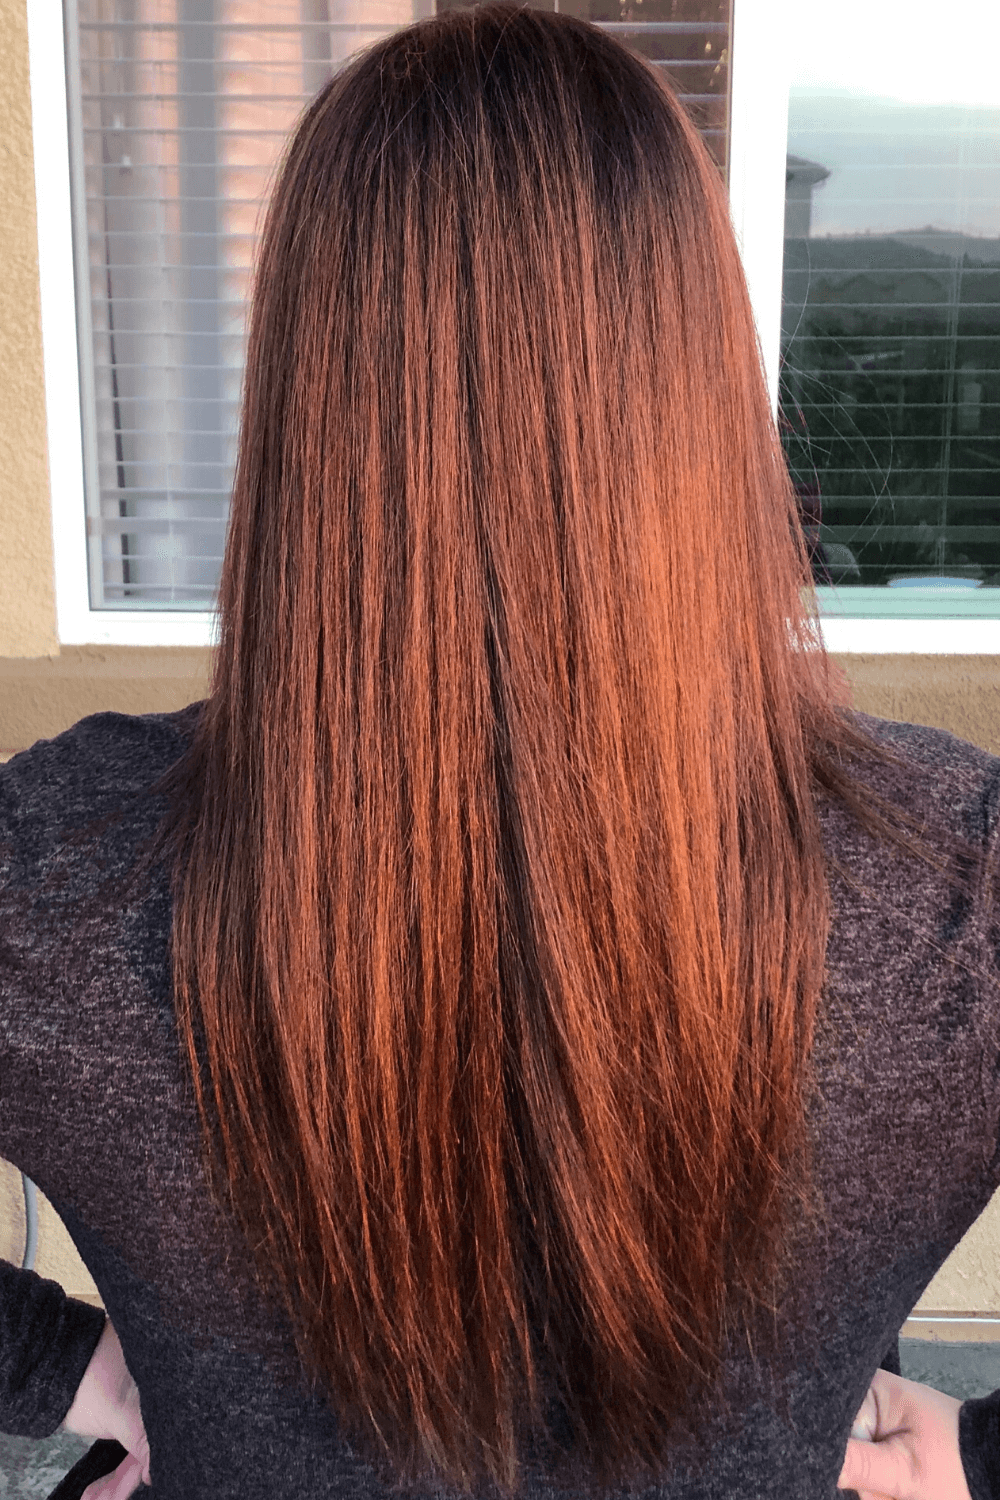 How I Dyed My Hair at Home with eSalon: See the Before & After!